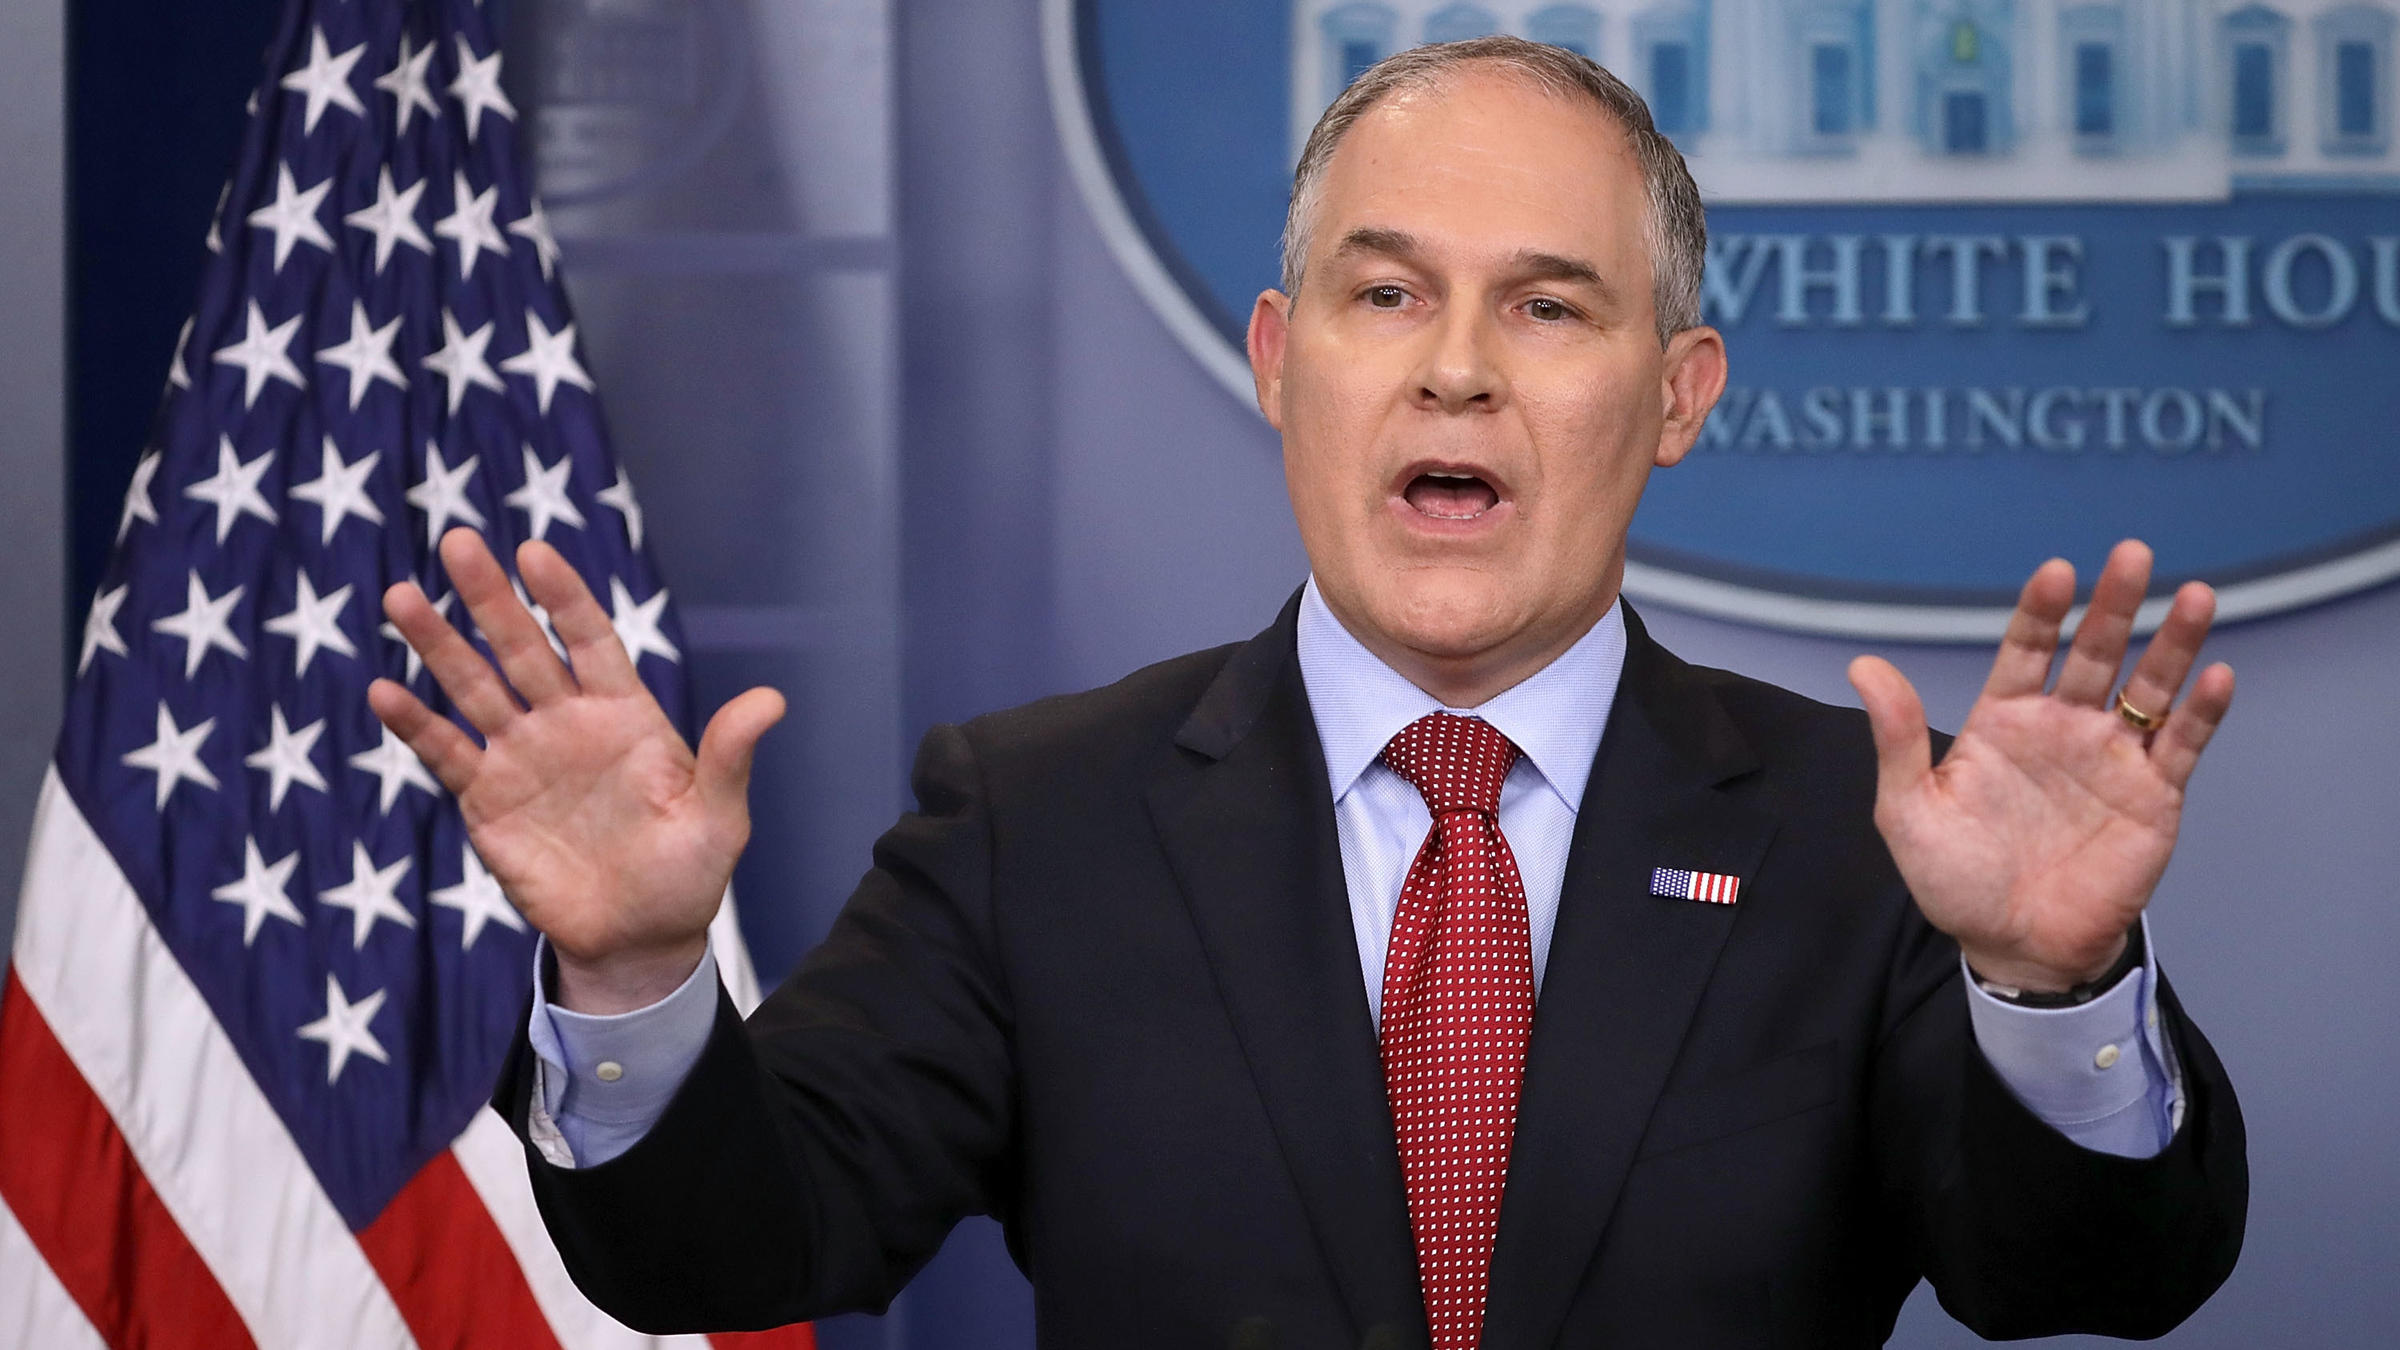 Trump stands by EPA chief Pruitt as probes into his conduct expand